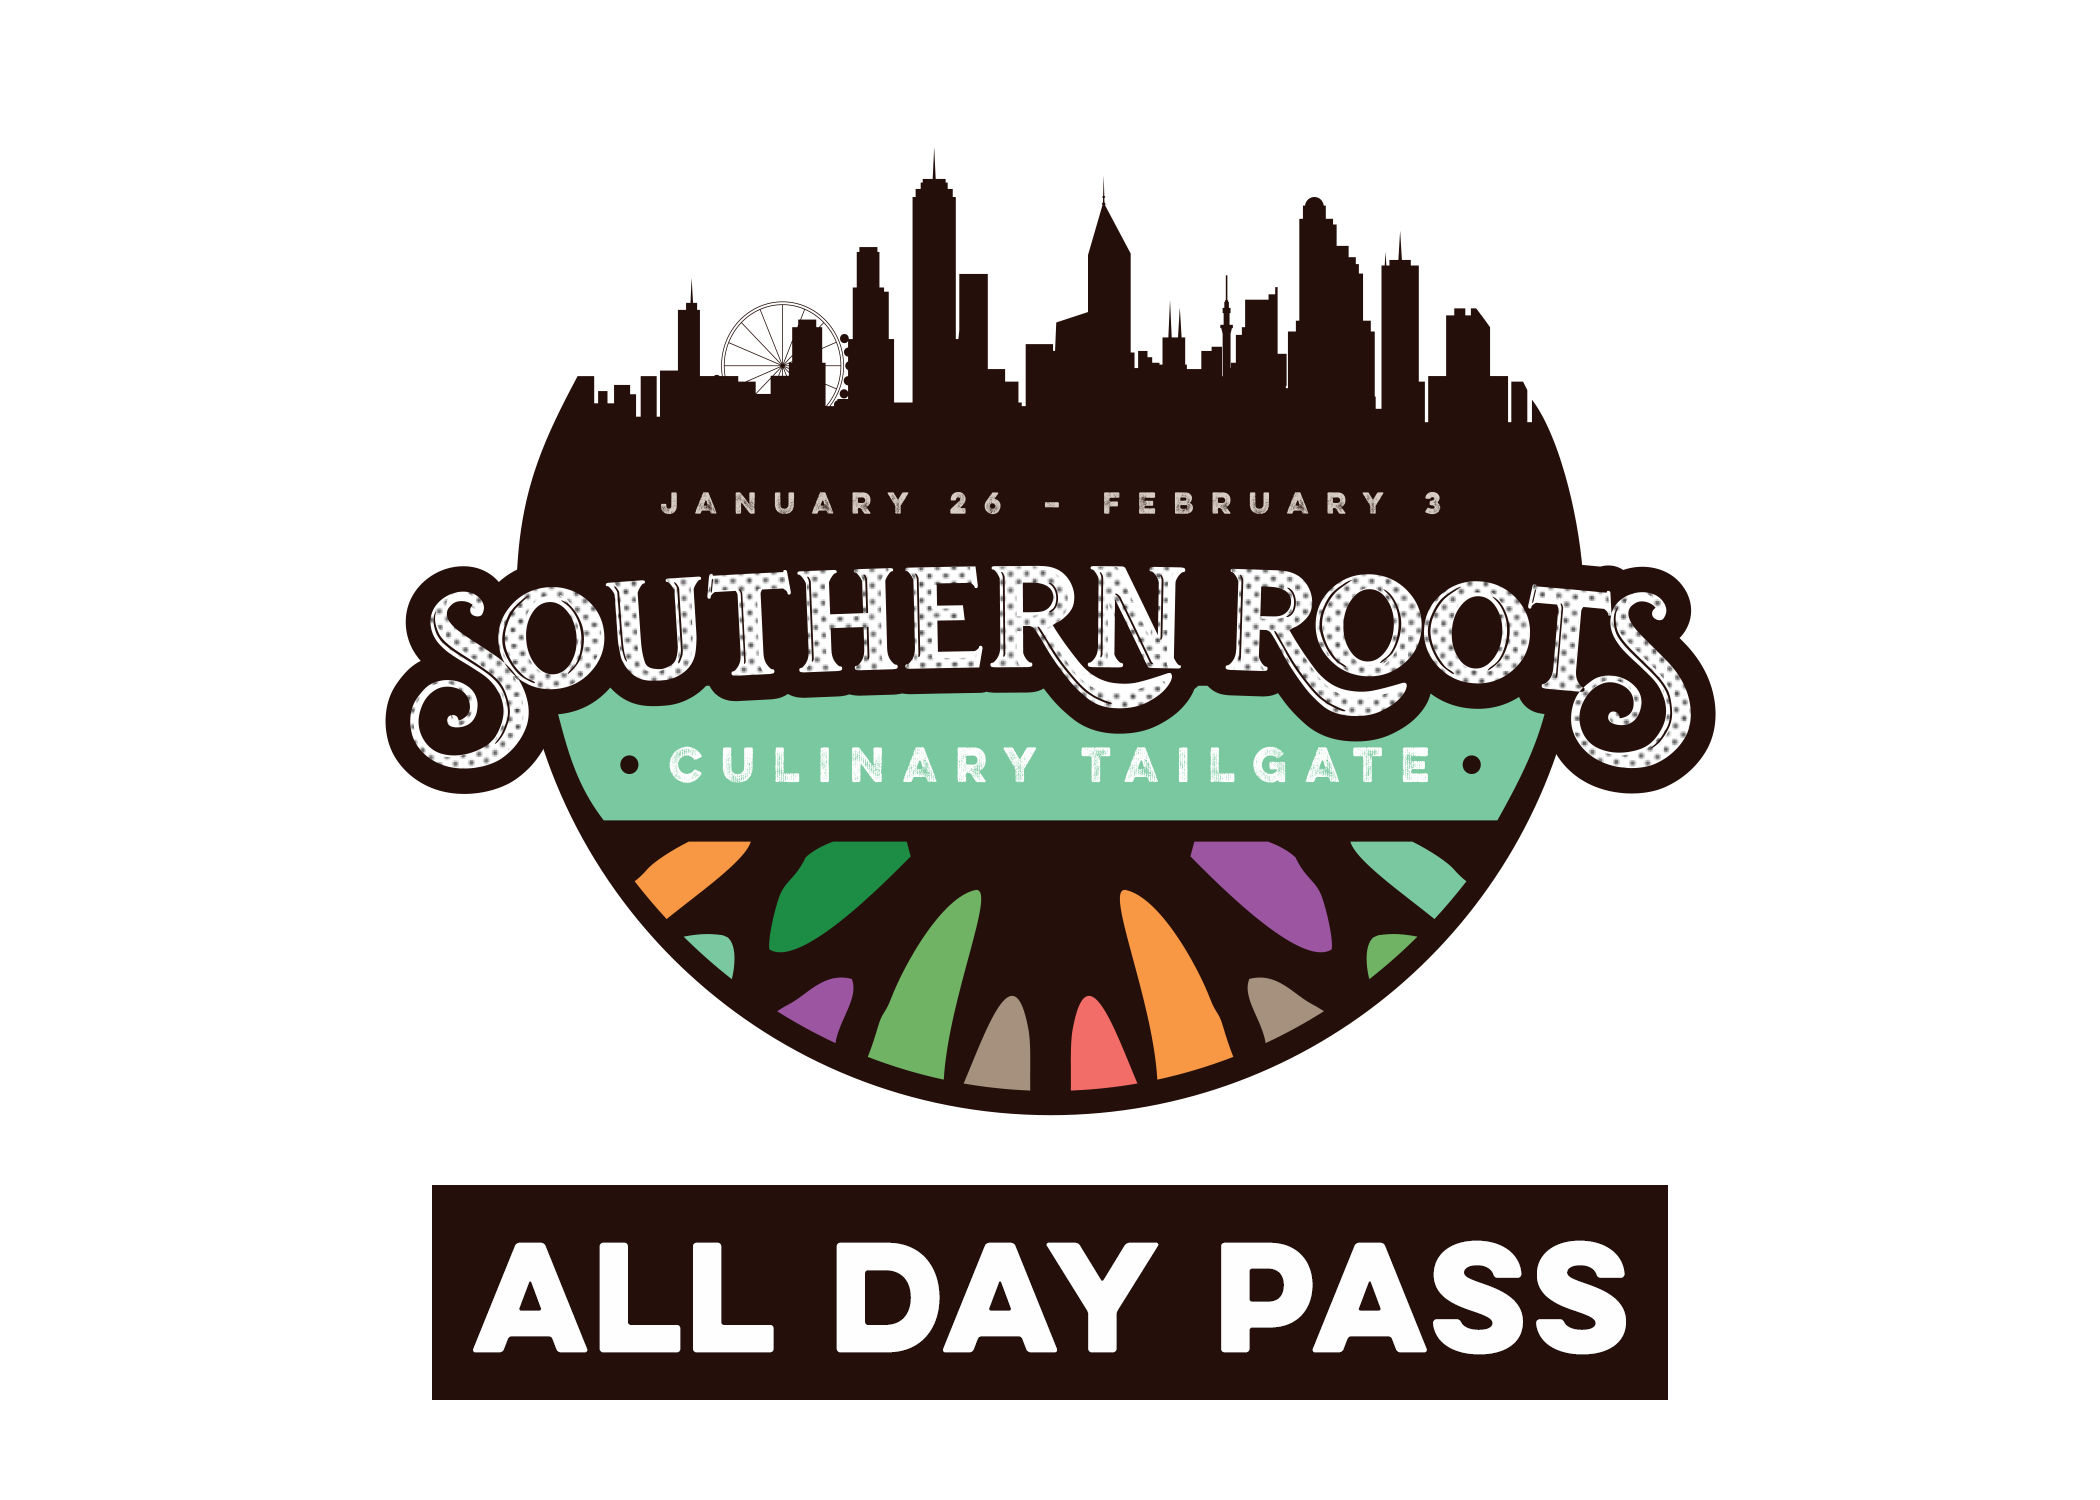 ALL DAY PASSES